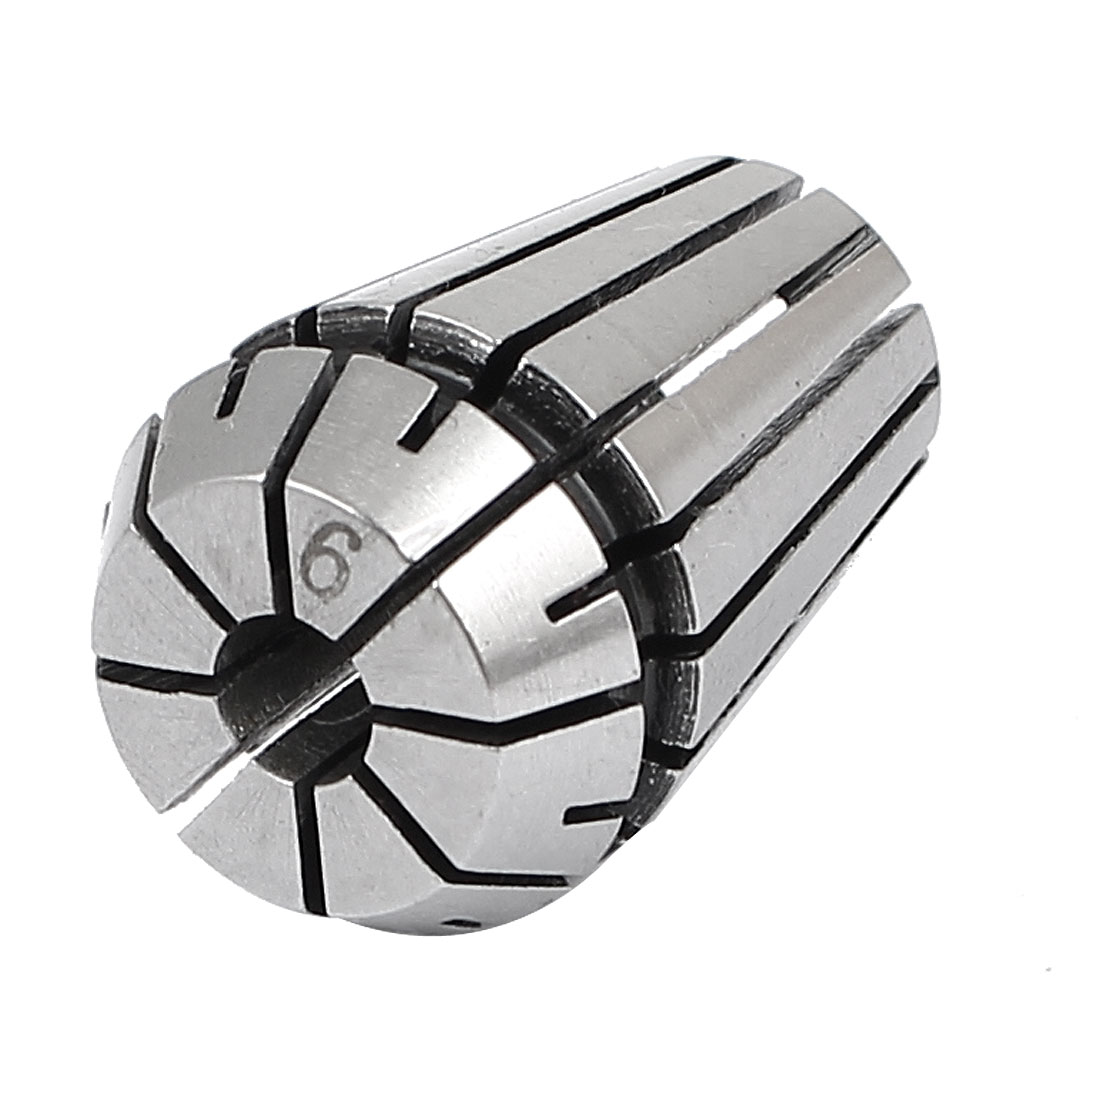 ER20 6mm Clamping Dia CNC Engraving Milling Machine Spring Collet